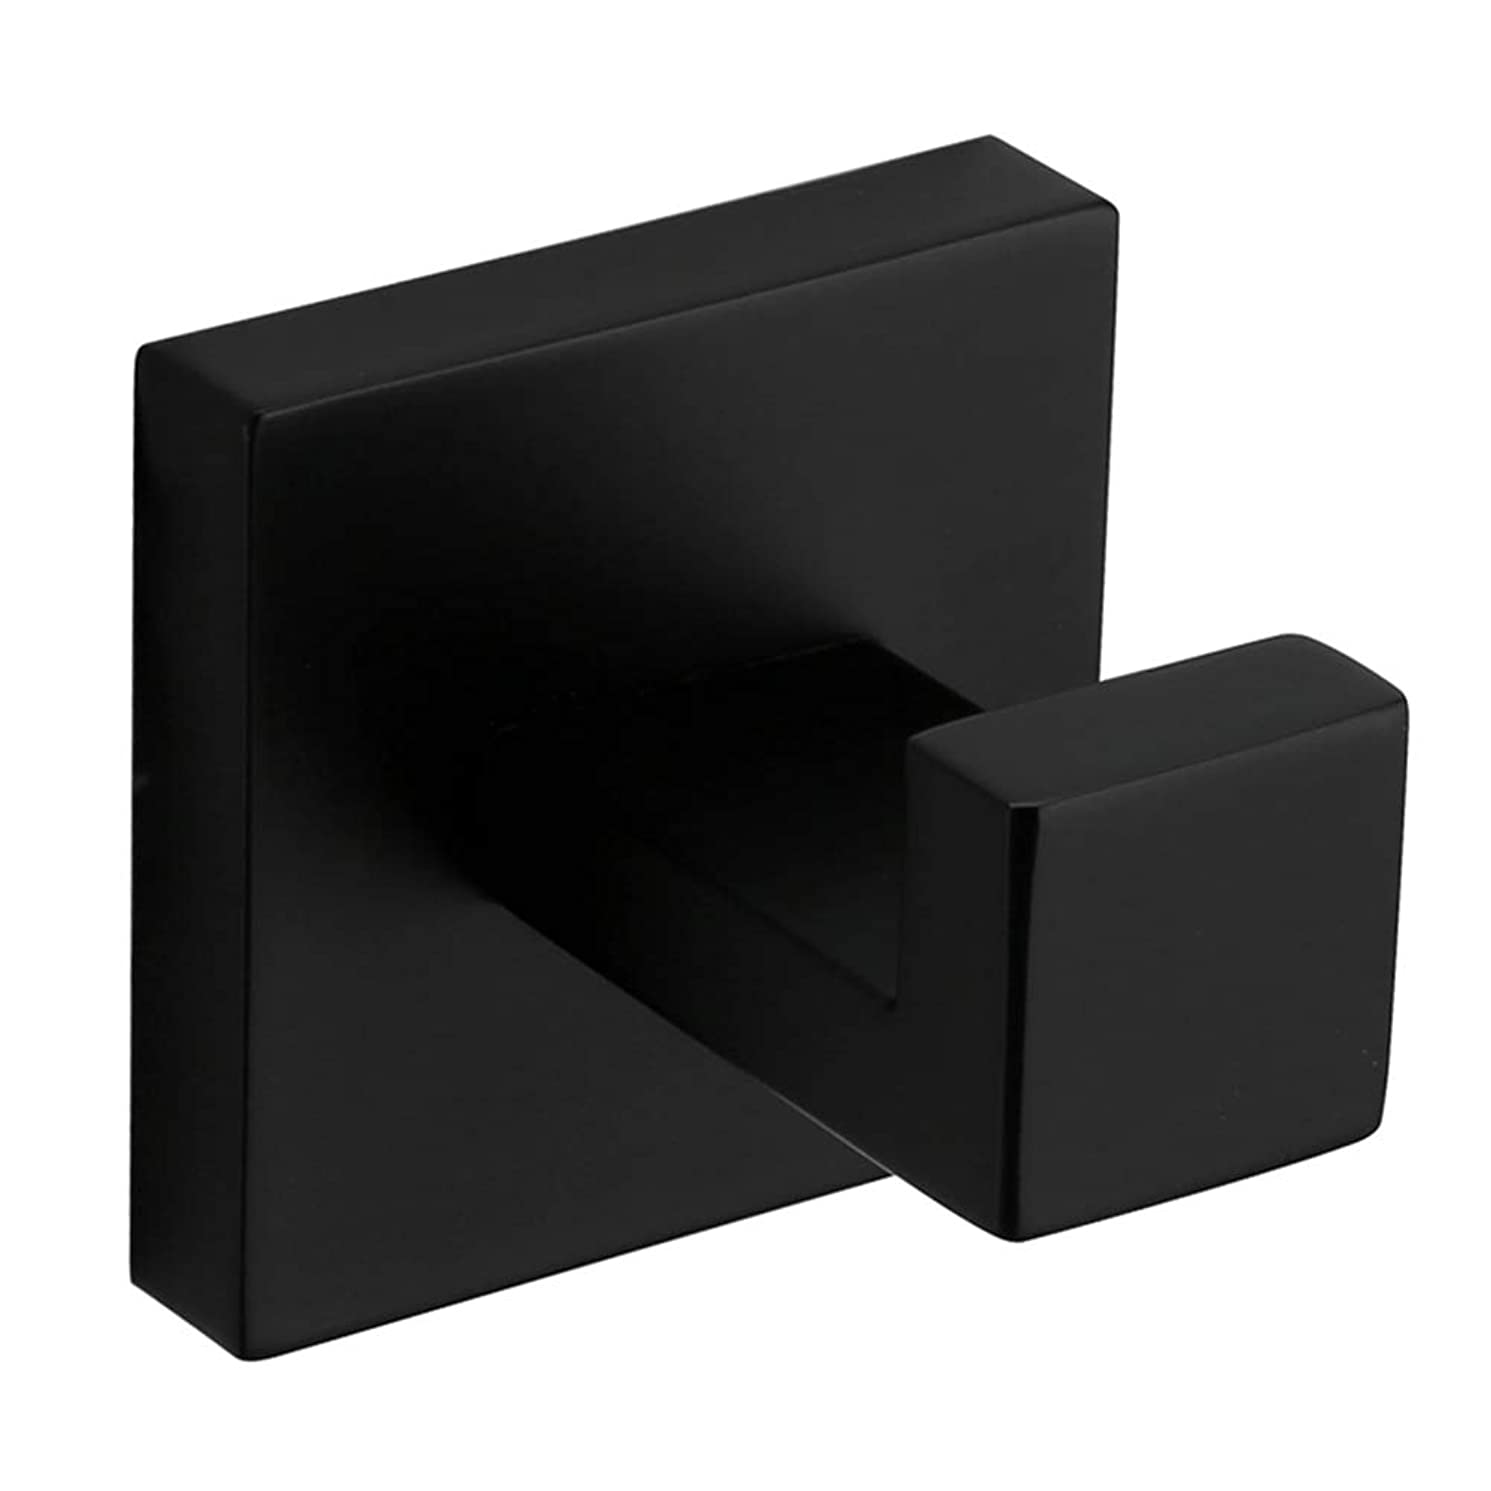 VELIMAX Premium Stainless Steel Towel Hook Robe Hook Squared Single Hook for Bathroom Matte Black Wall Mount Contemporary Style